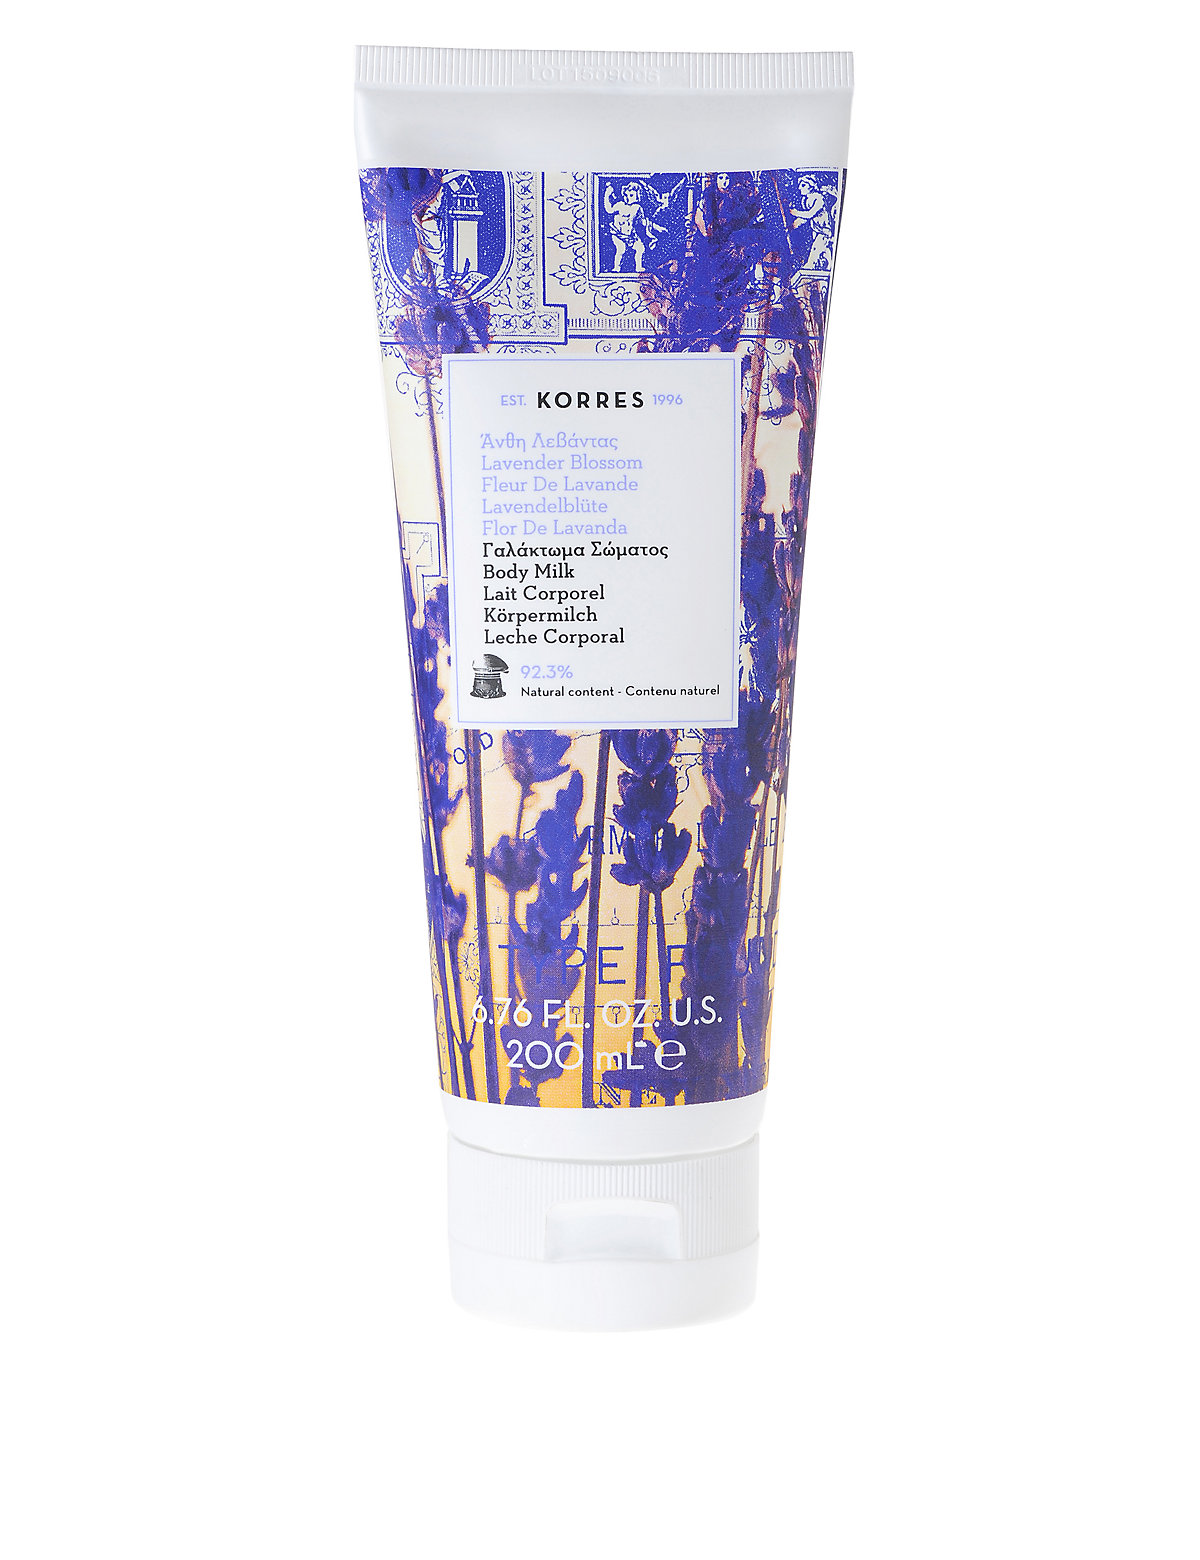 Korres Lavender Blossom Body Milk 200ml